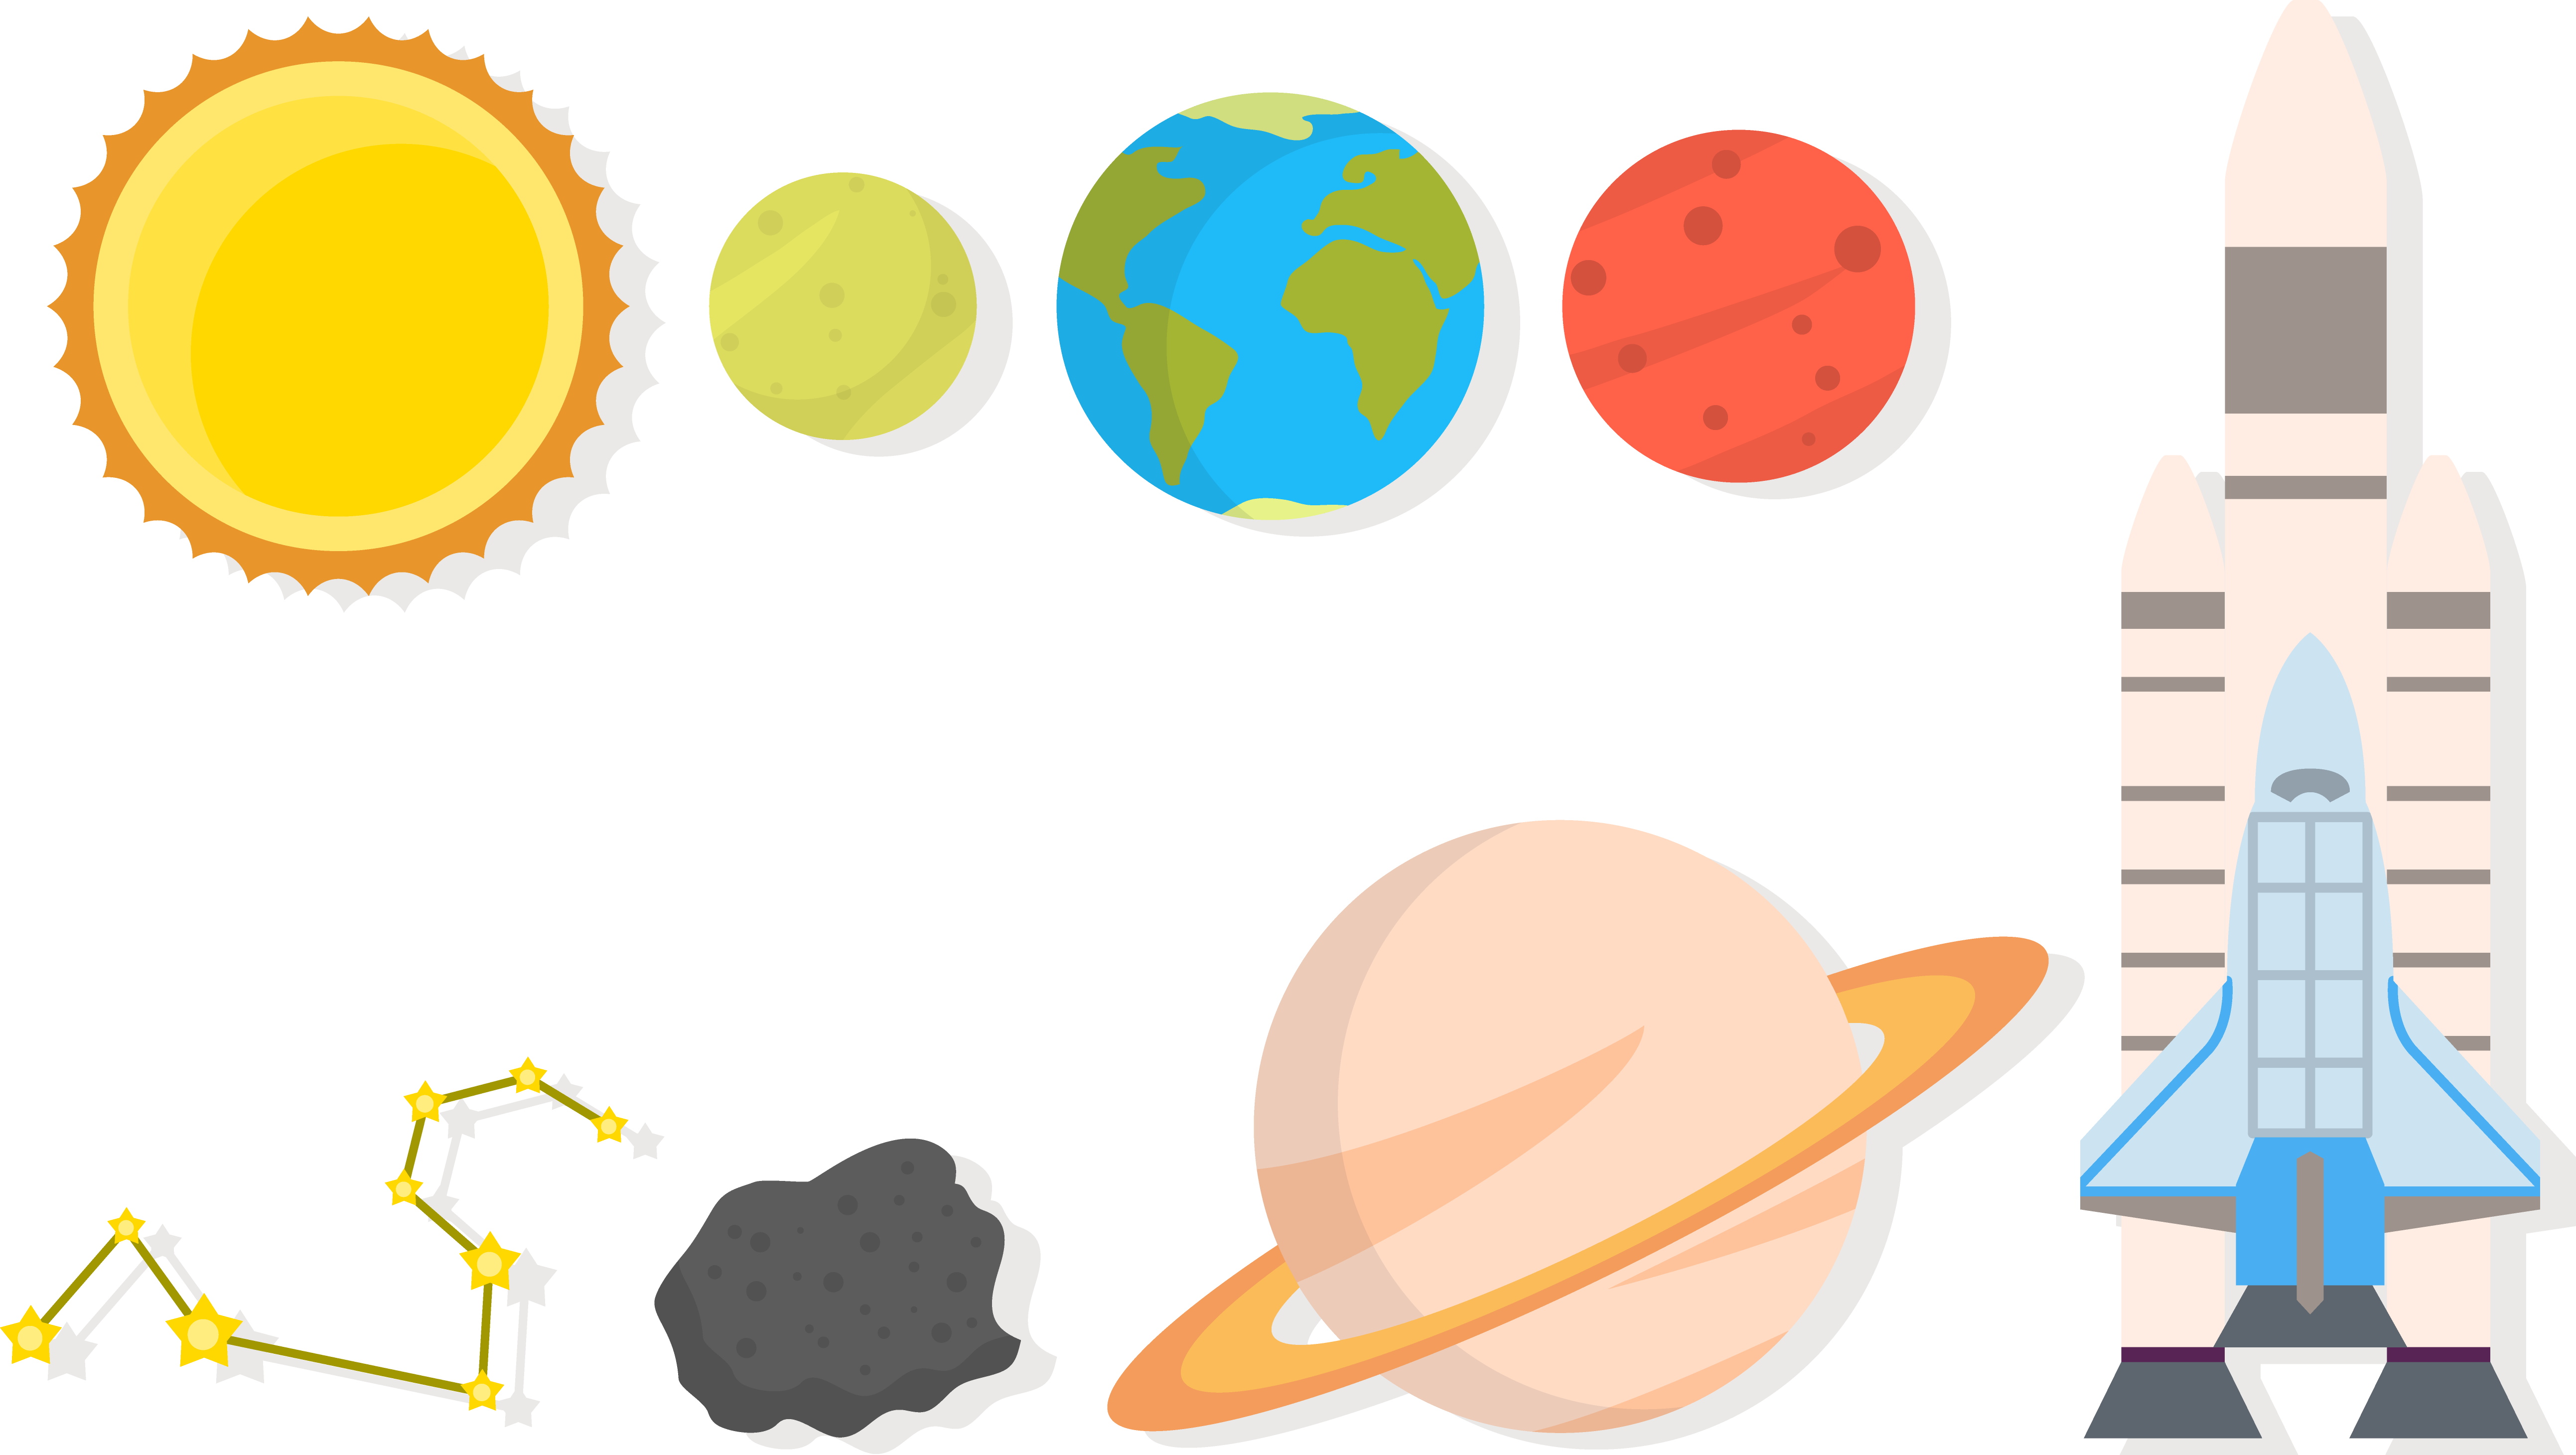 Vector ufo graphic. Universe drawing planet technical